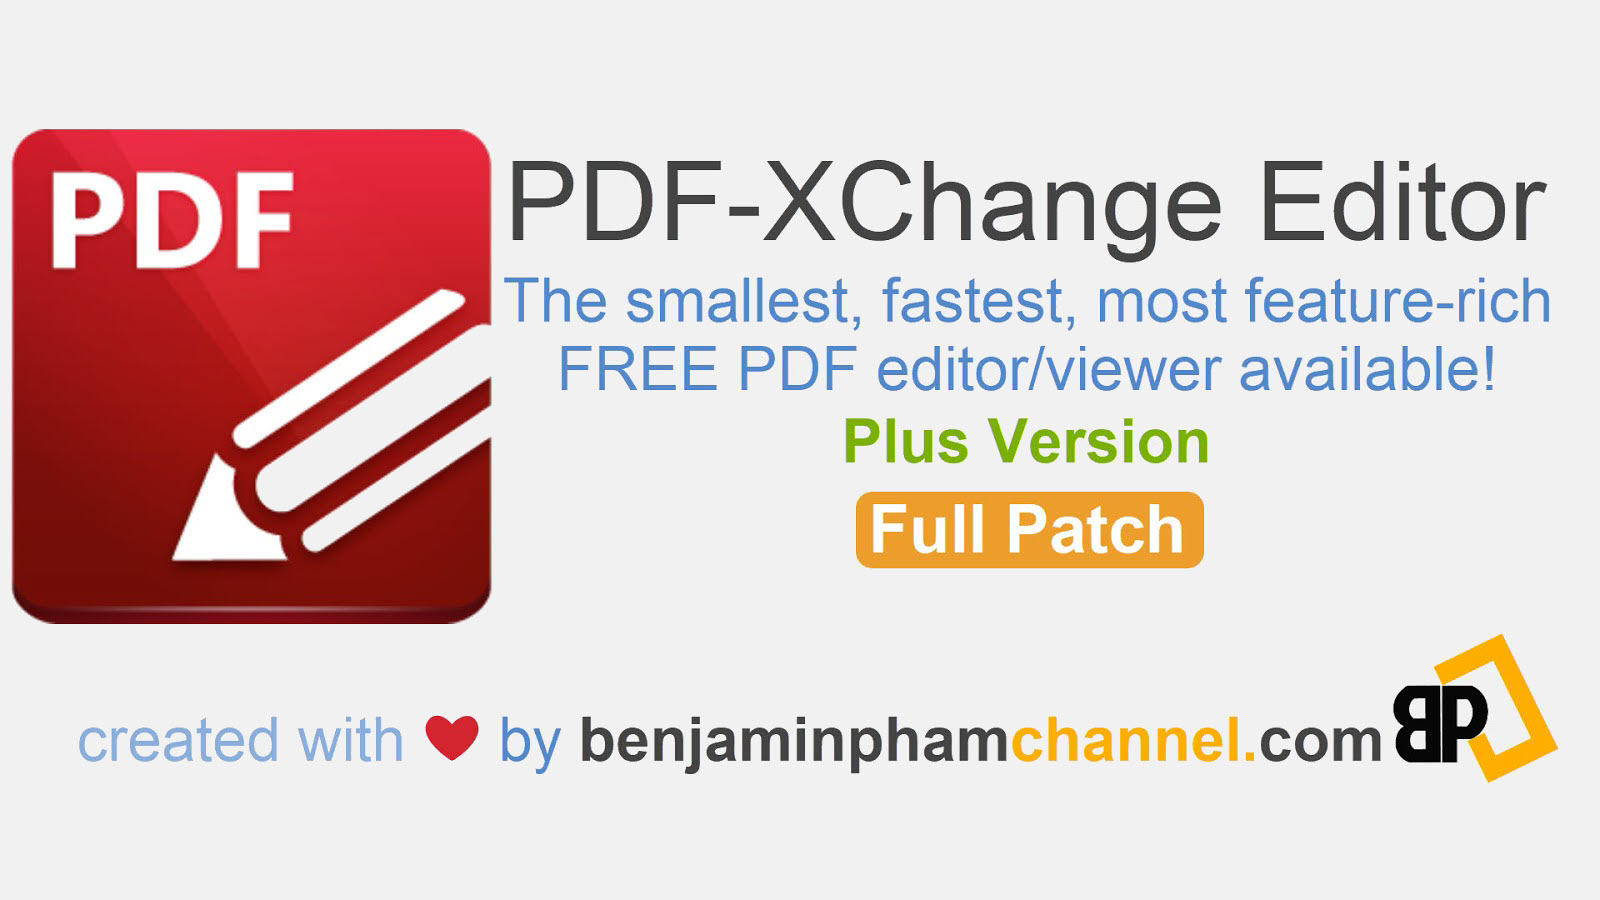 PDF-XChange Editor Plus 7.0.328.1 + Portable